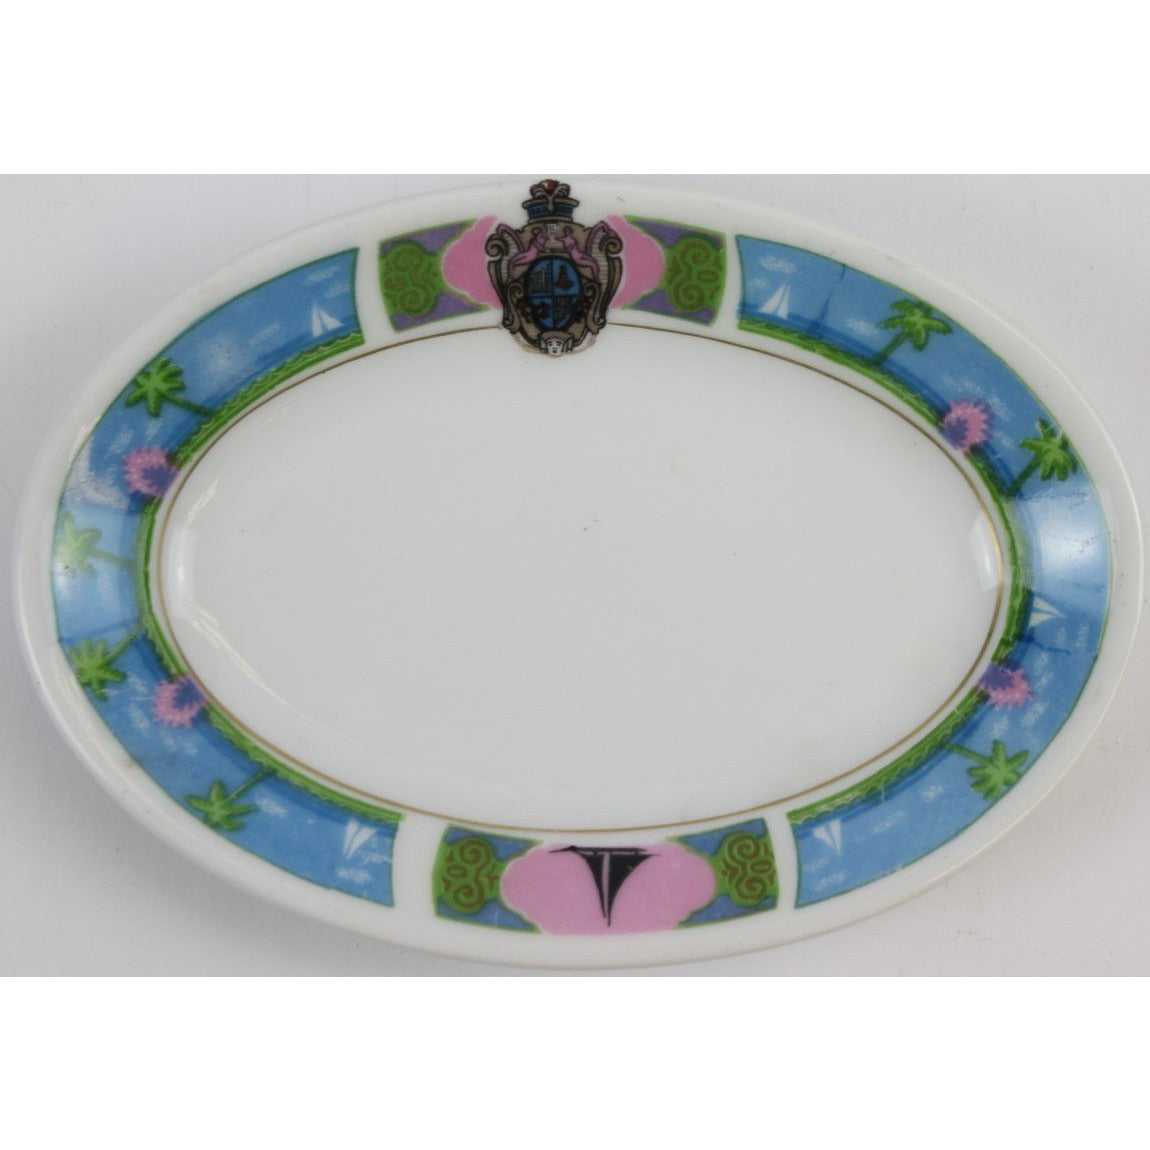 Fraunfelter China Oval Dish